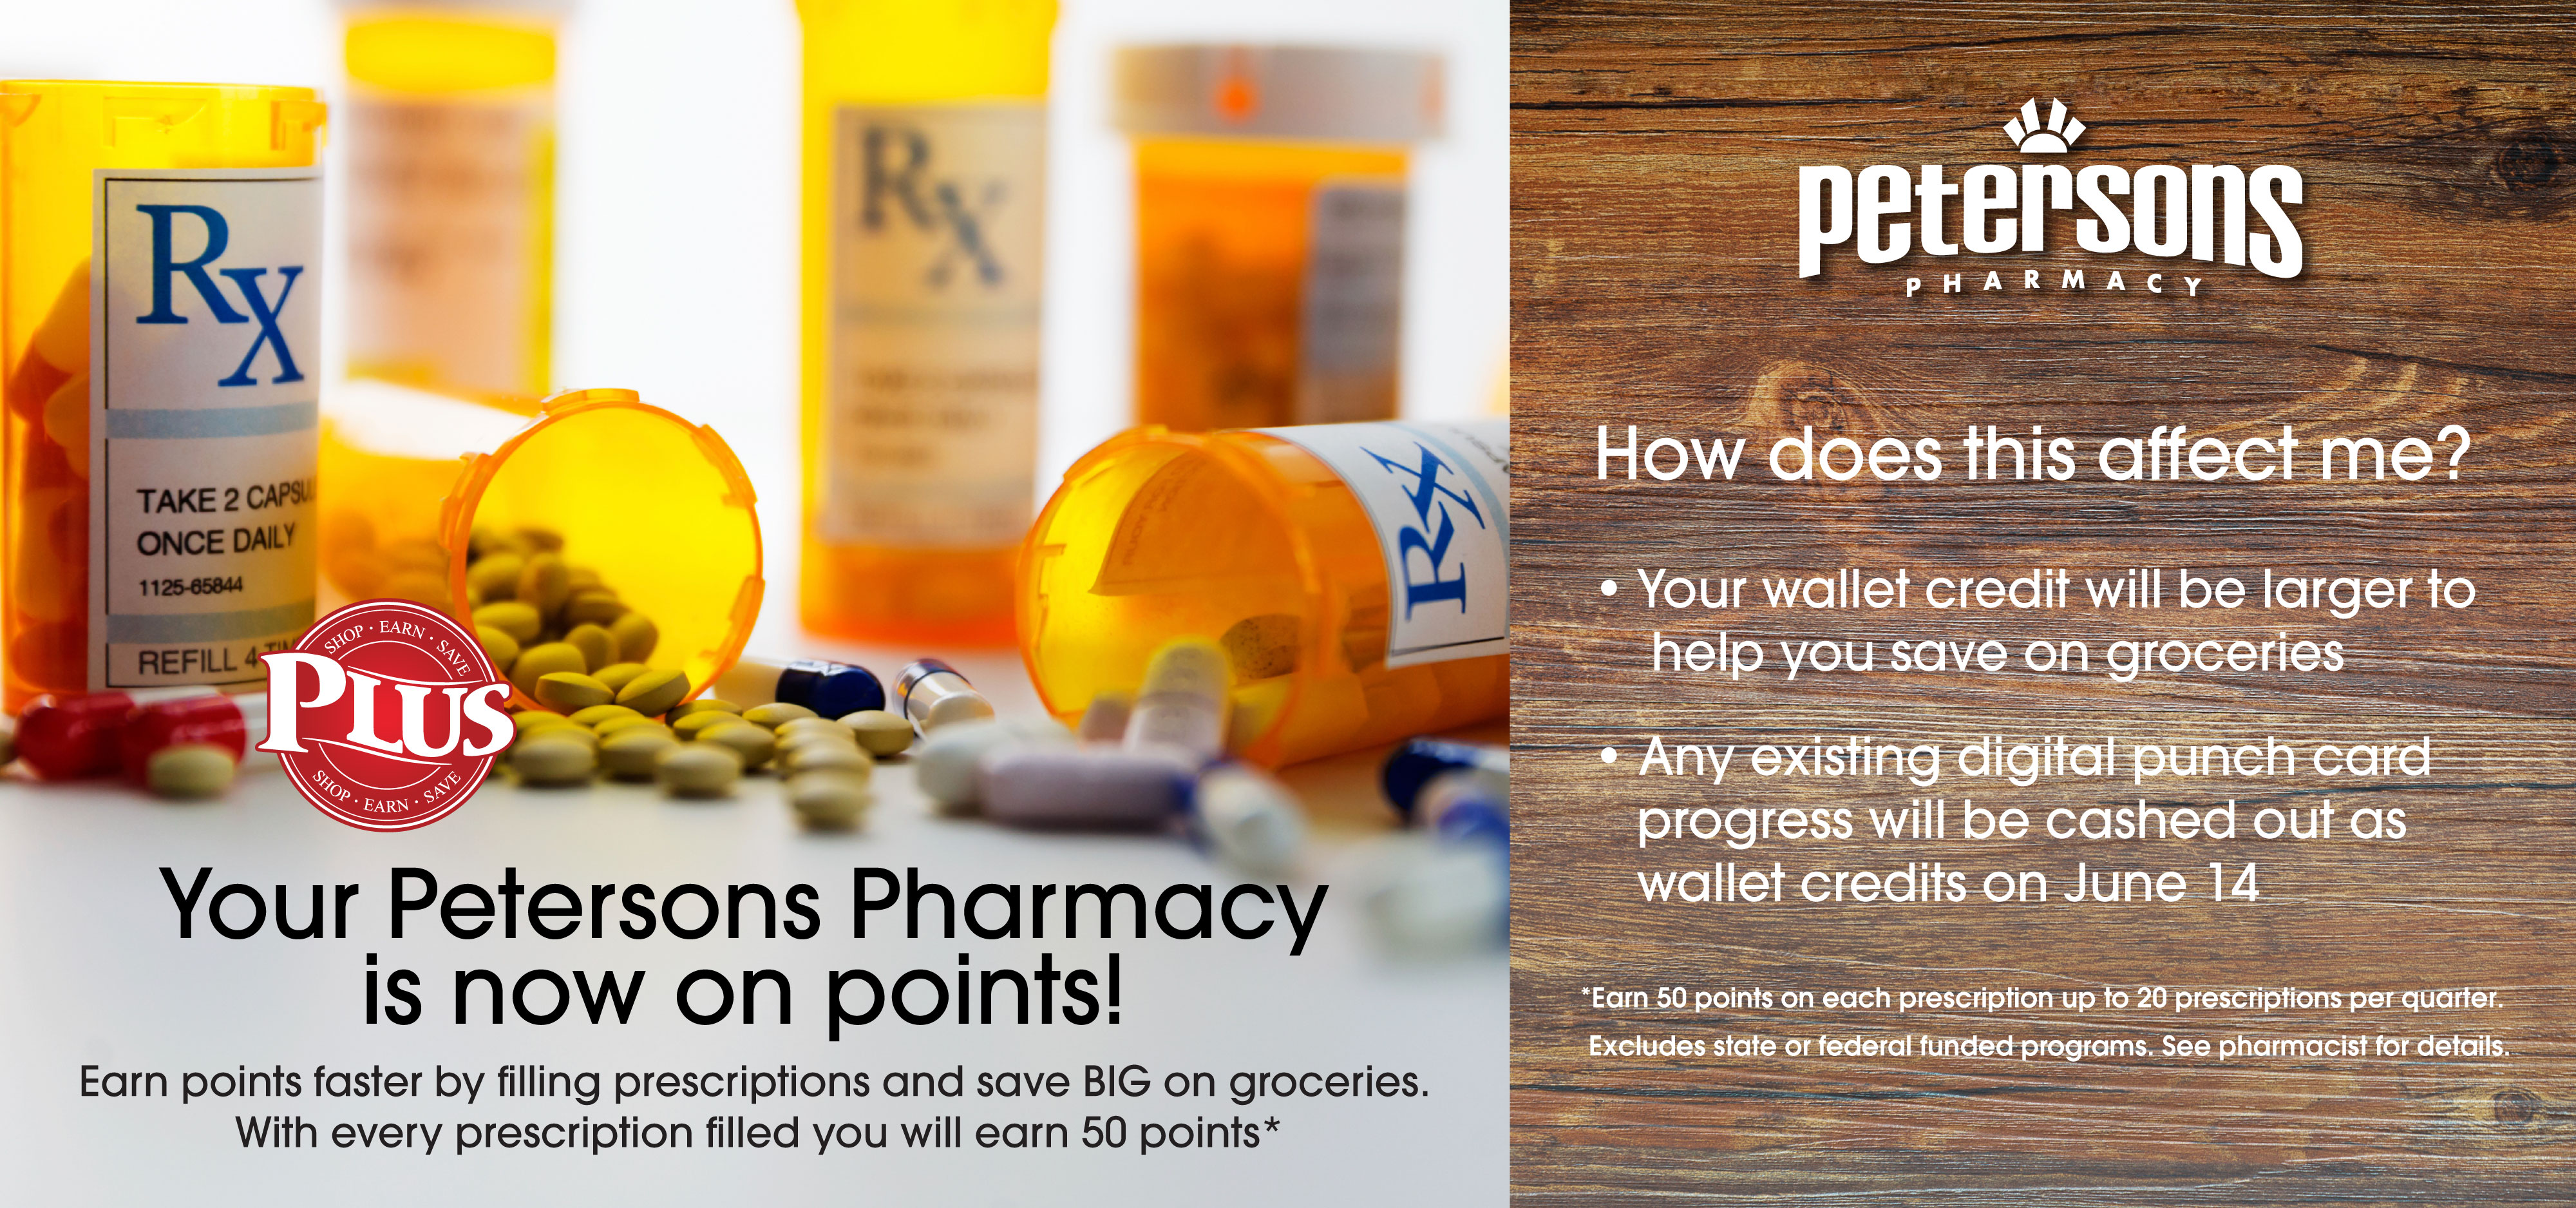 Peterson's Pharmacy is now on points!